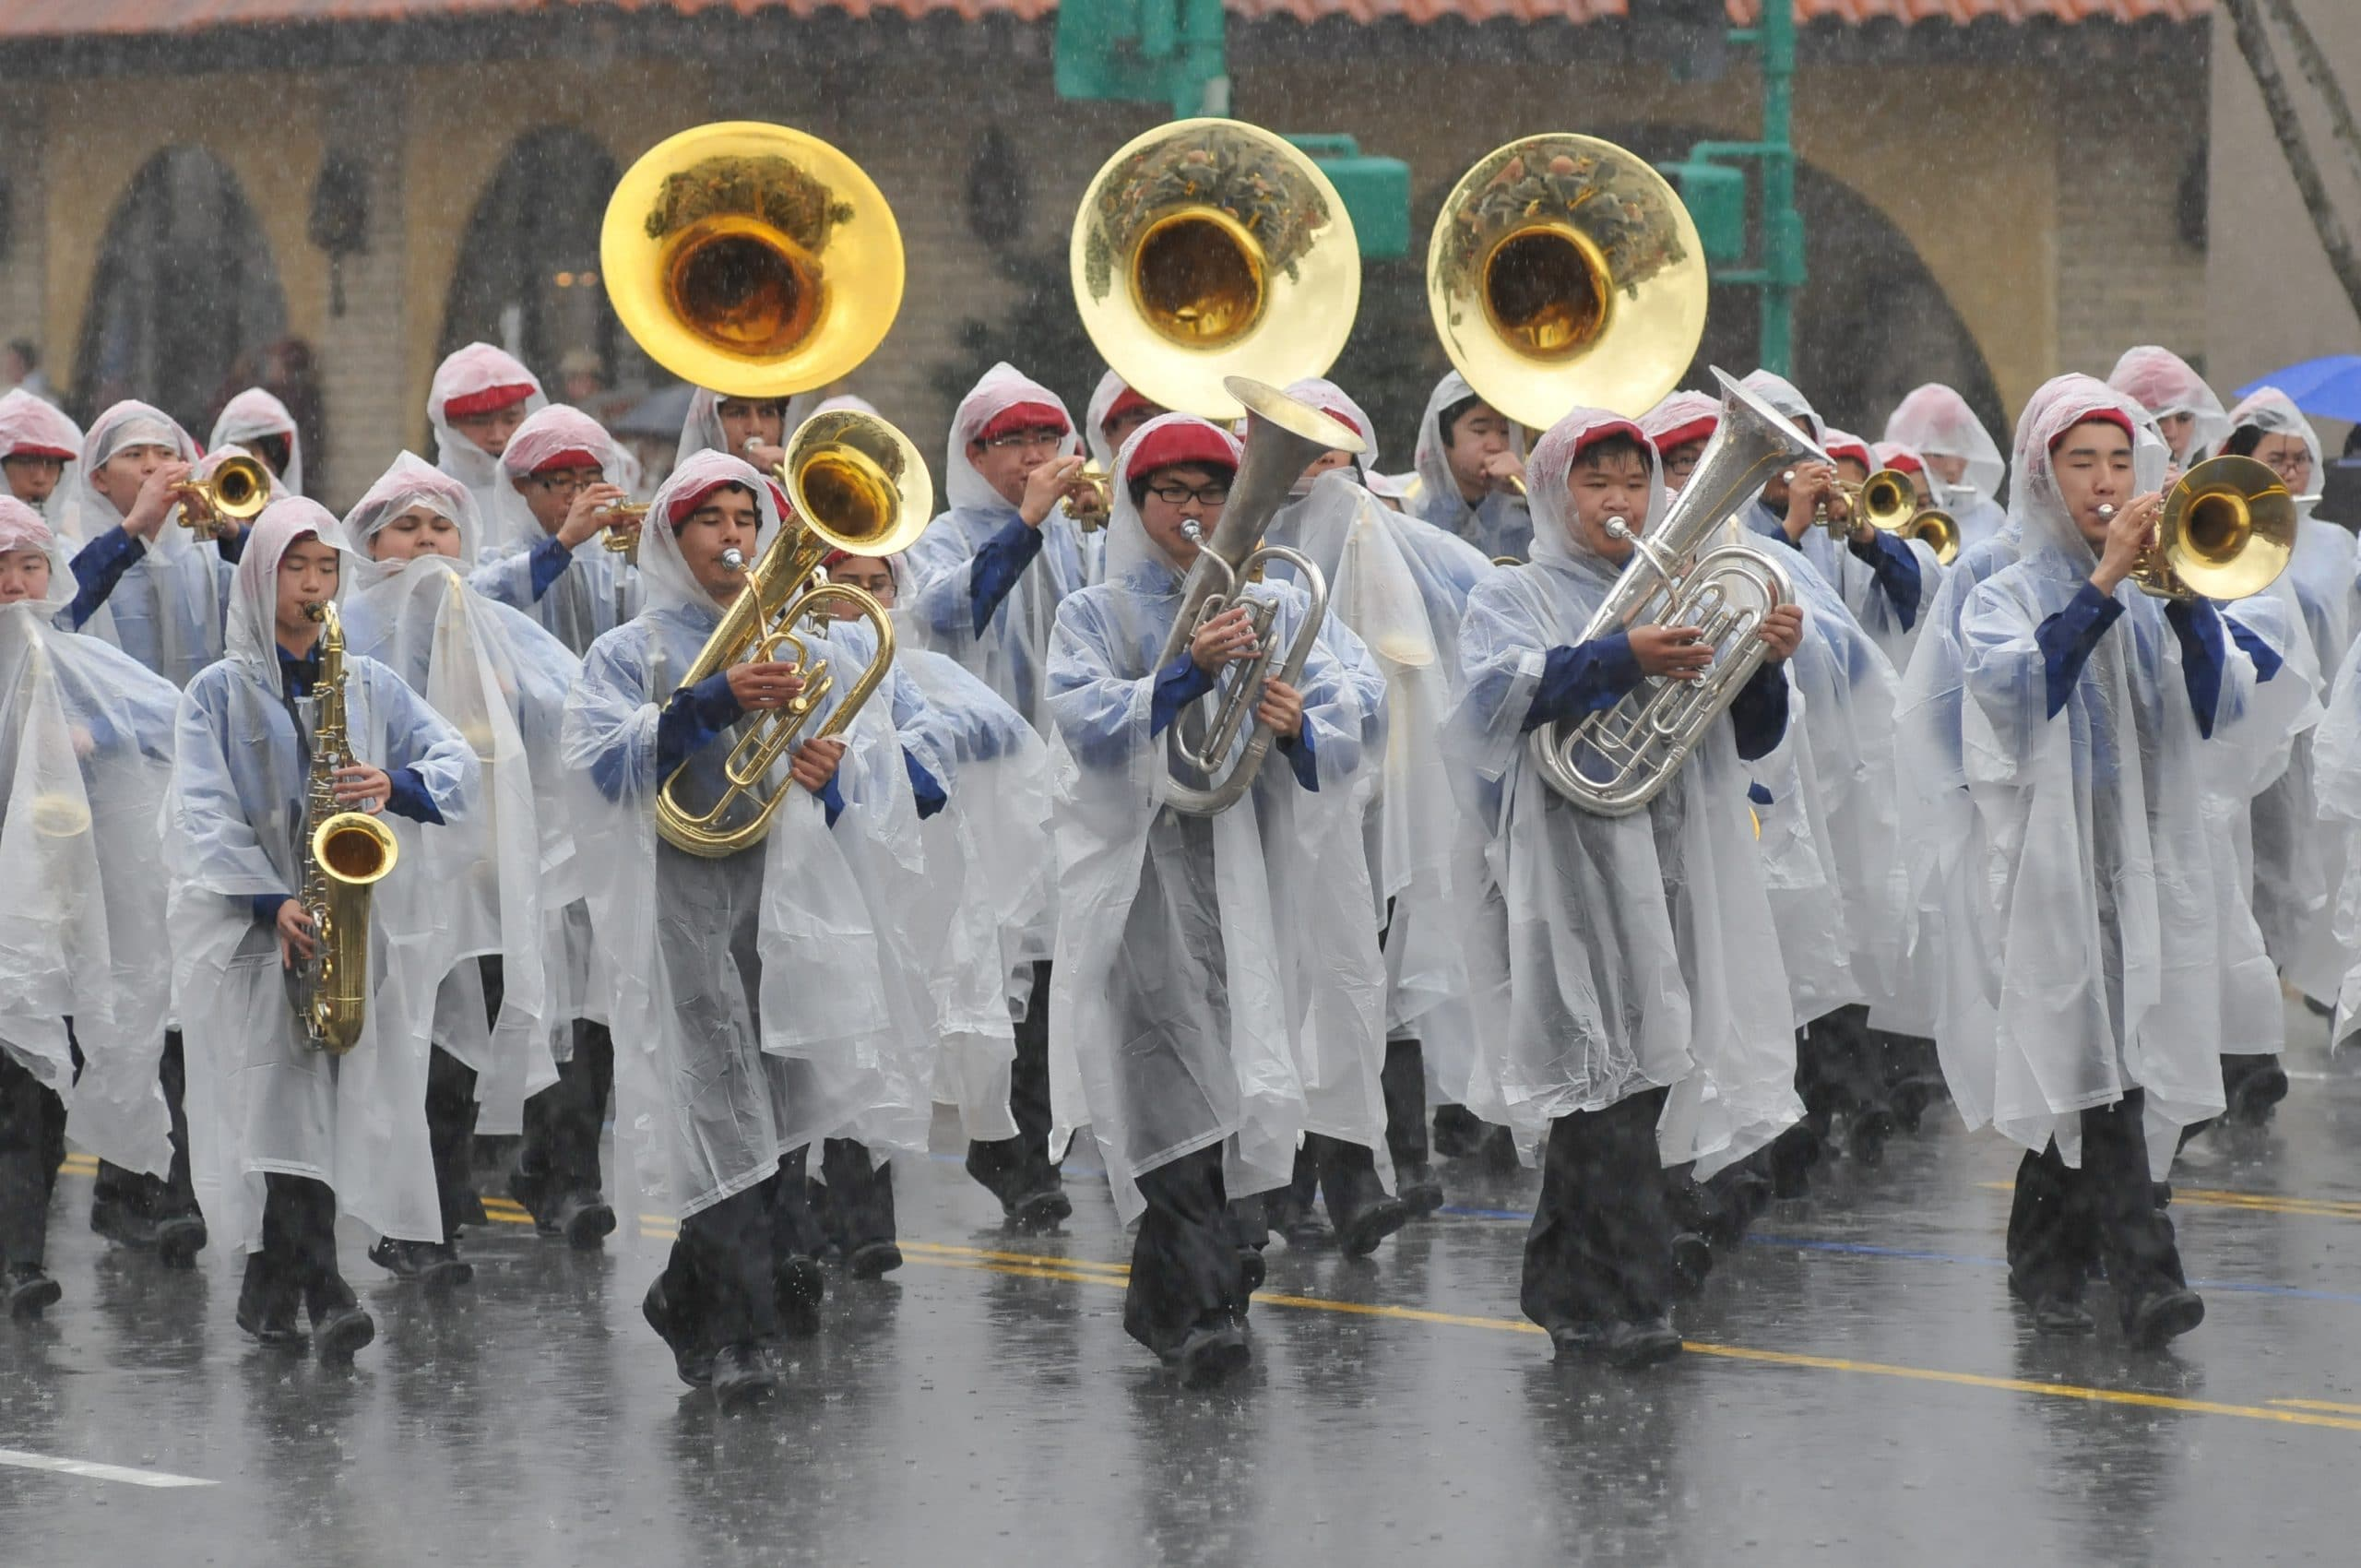 Rain-on-the-Parade-2010.jpg